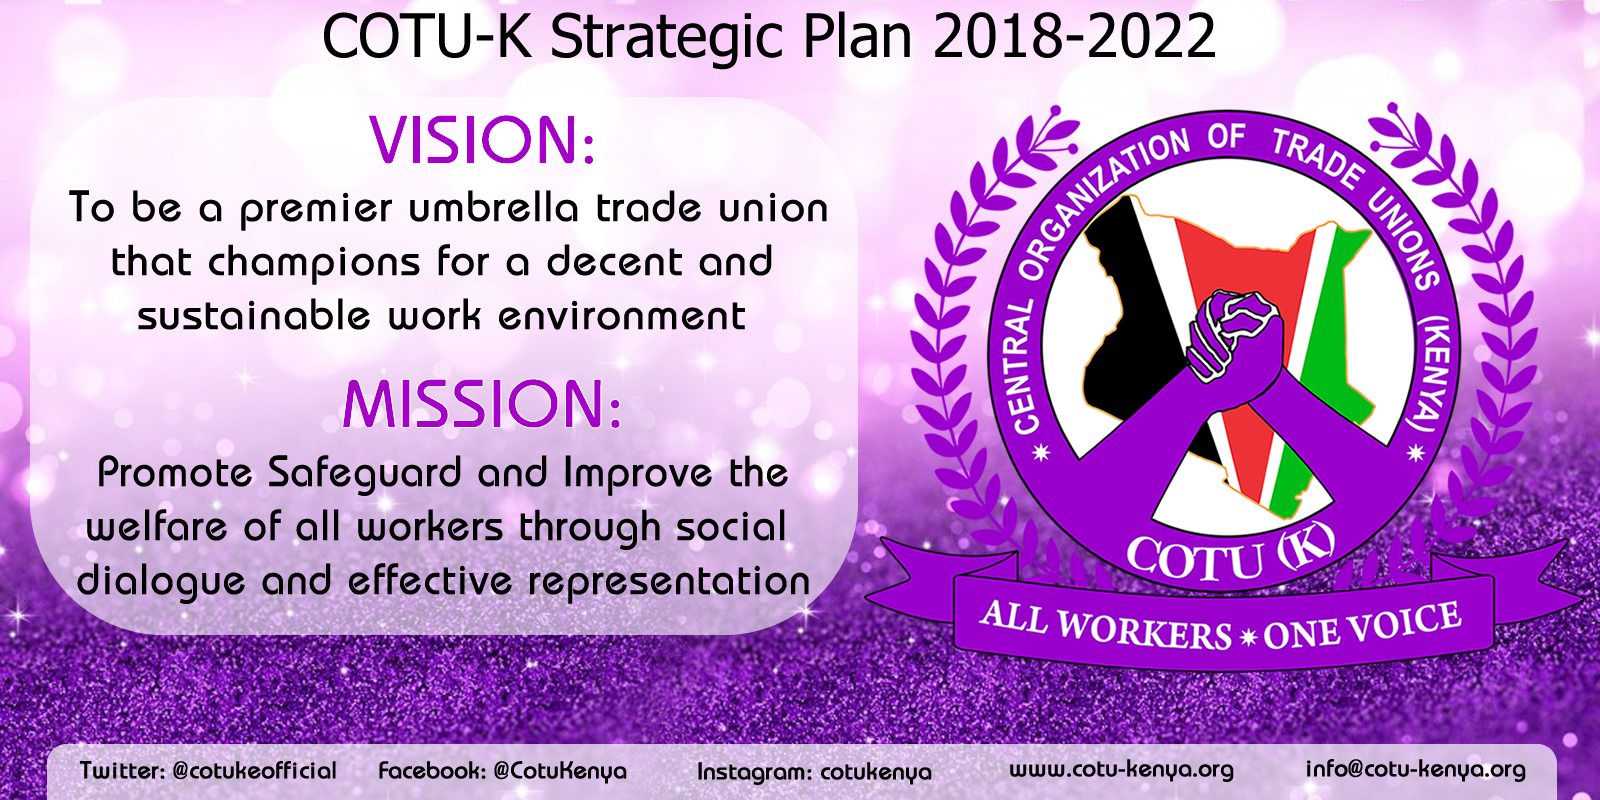 The Central Organization of Trade Unions (COTU-K) has launched a new Strategic Plan for the period 2018-2022. With it has a new vision and mission for the umbrella trade union. Vision: To be A premier umbrella trade union that champions for a decent and sustainable work environment Mission: Promote Safeguard and Improve the welfare of all workers through social dialogue and effective representation